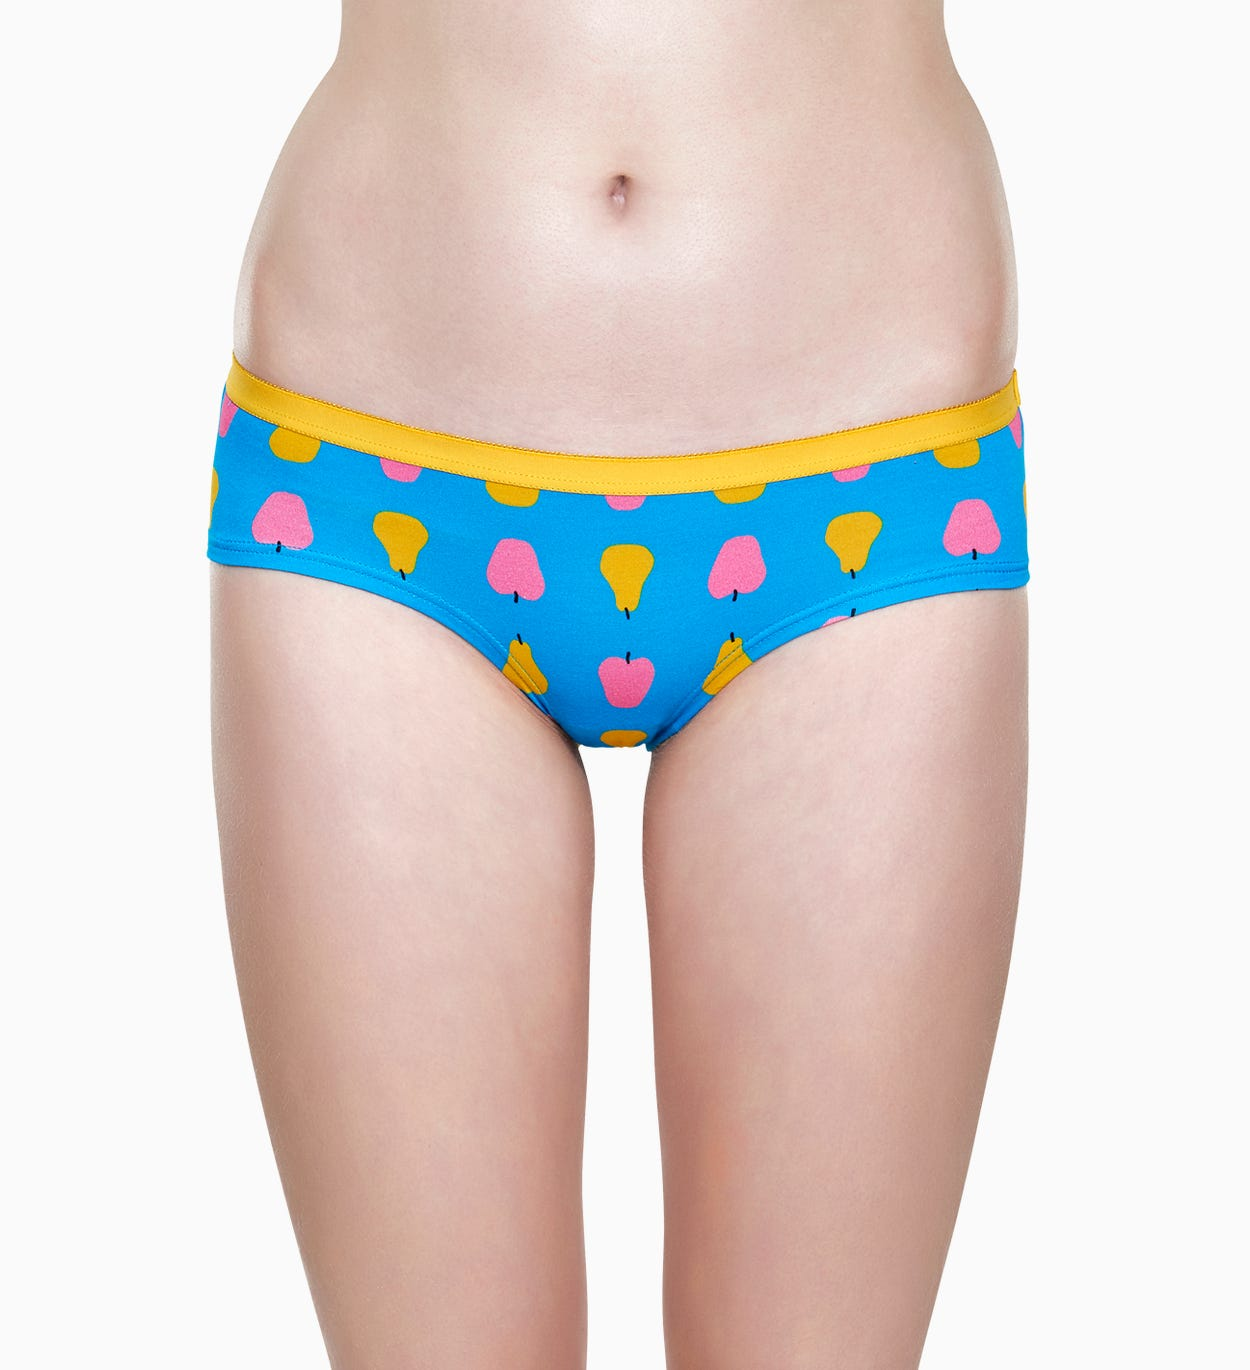 Mutande donna slip Blu: modello Fruit | Happy Socks